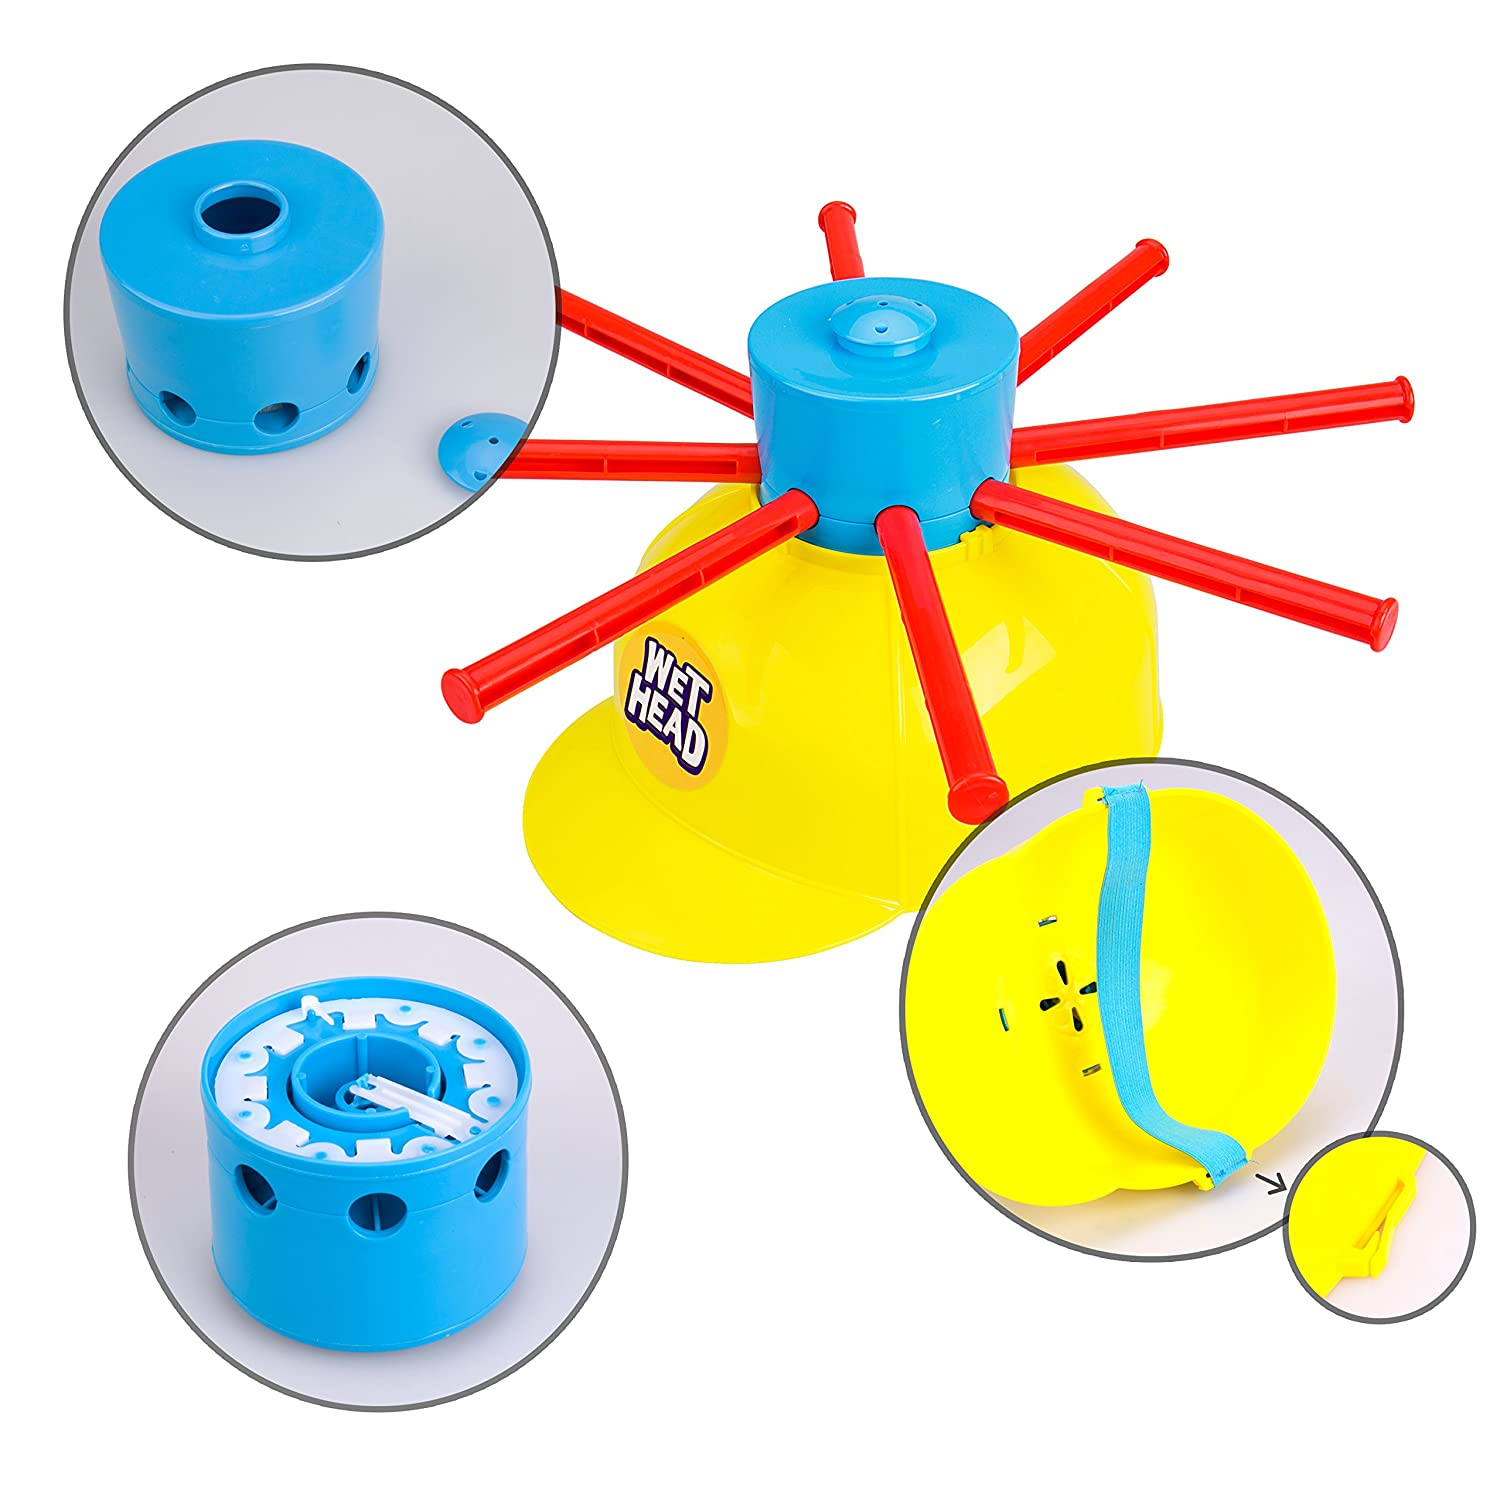 Wet Head Game Gvoo Funny Wet Hat Water Challenge Roulette Game Prank Game Toys for Family Christmas Gift and Outdoor Activity Halloween Party Holiday